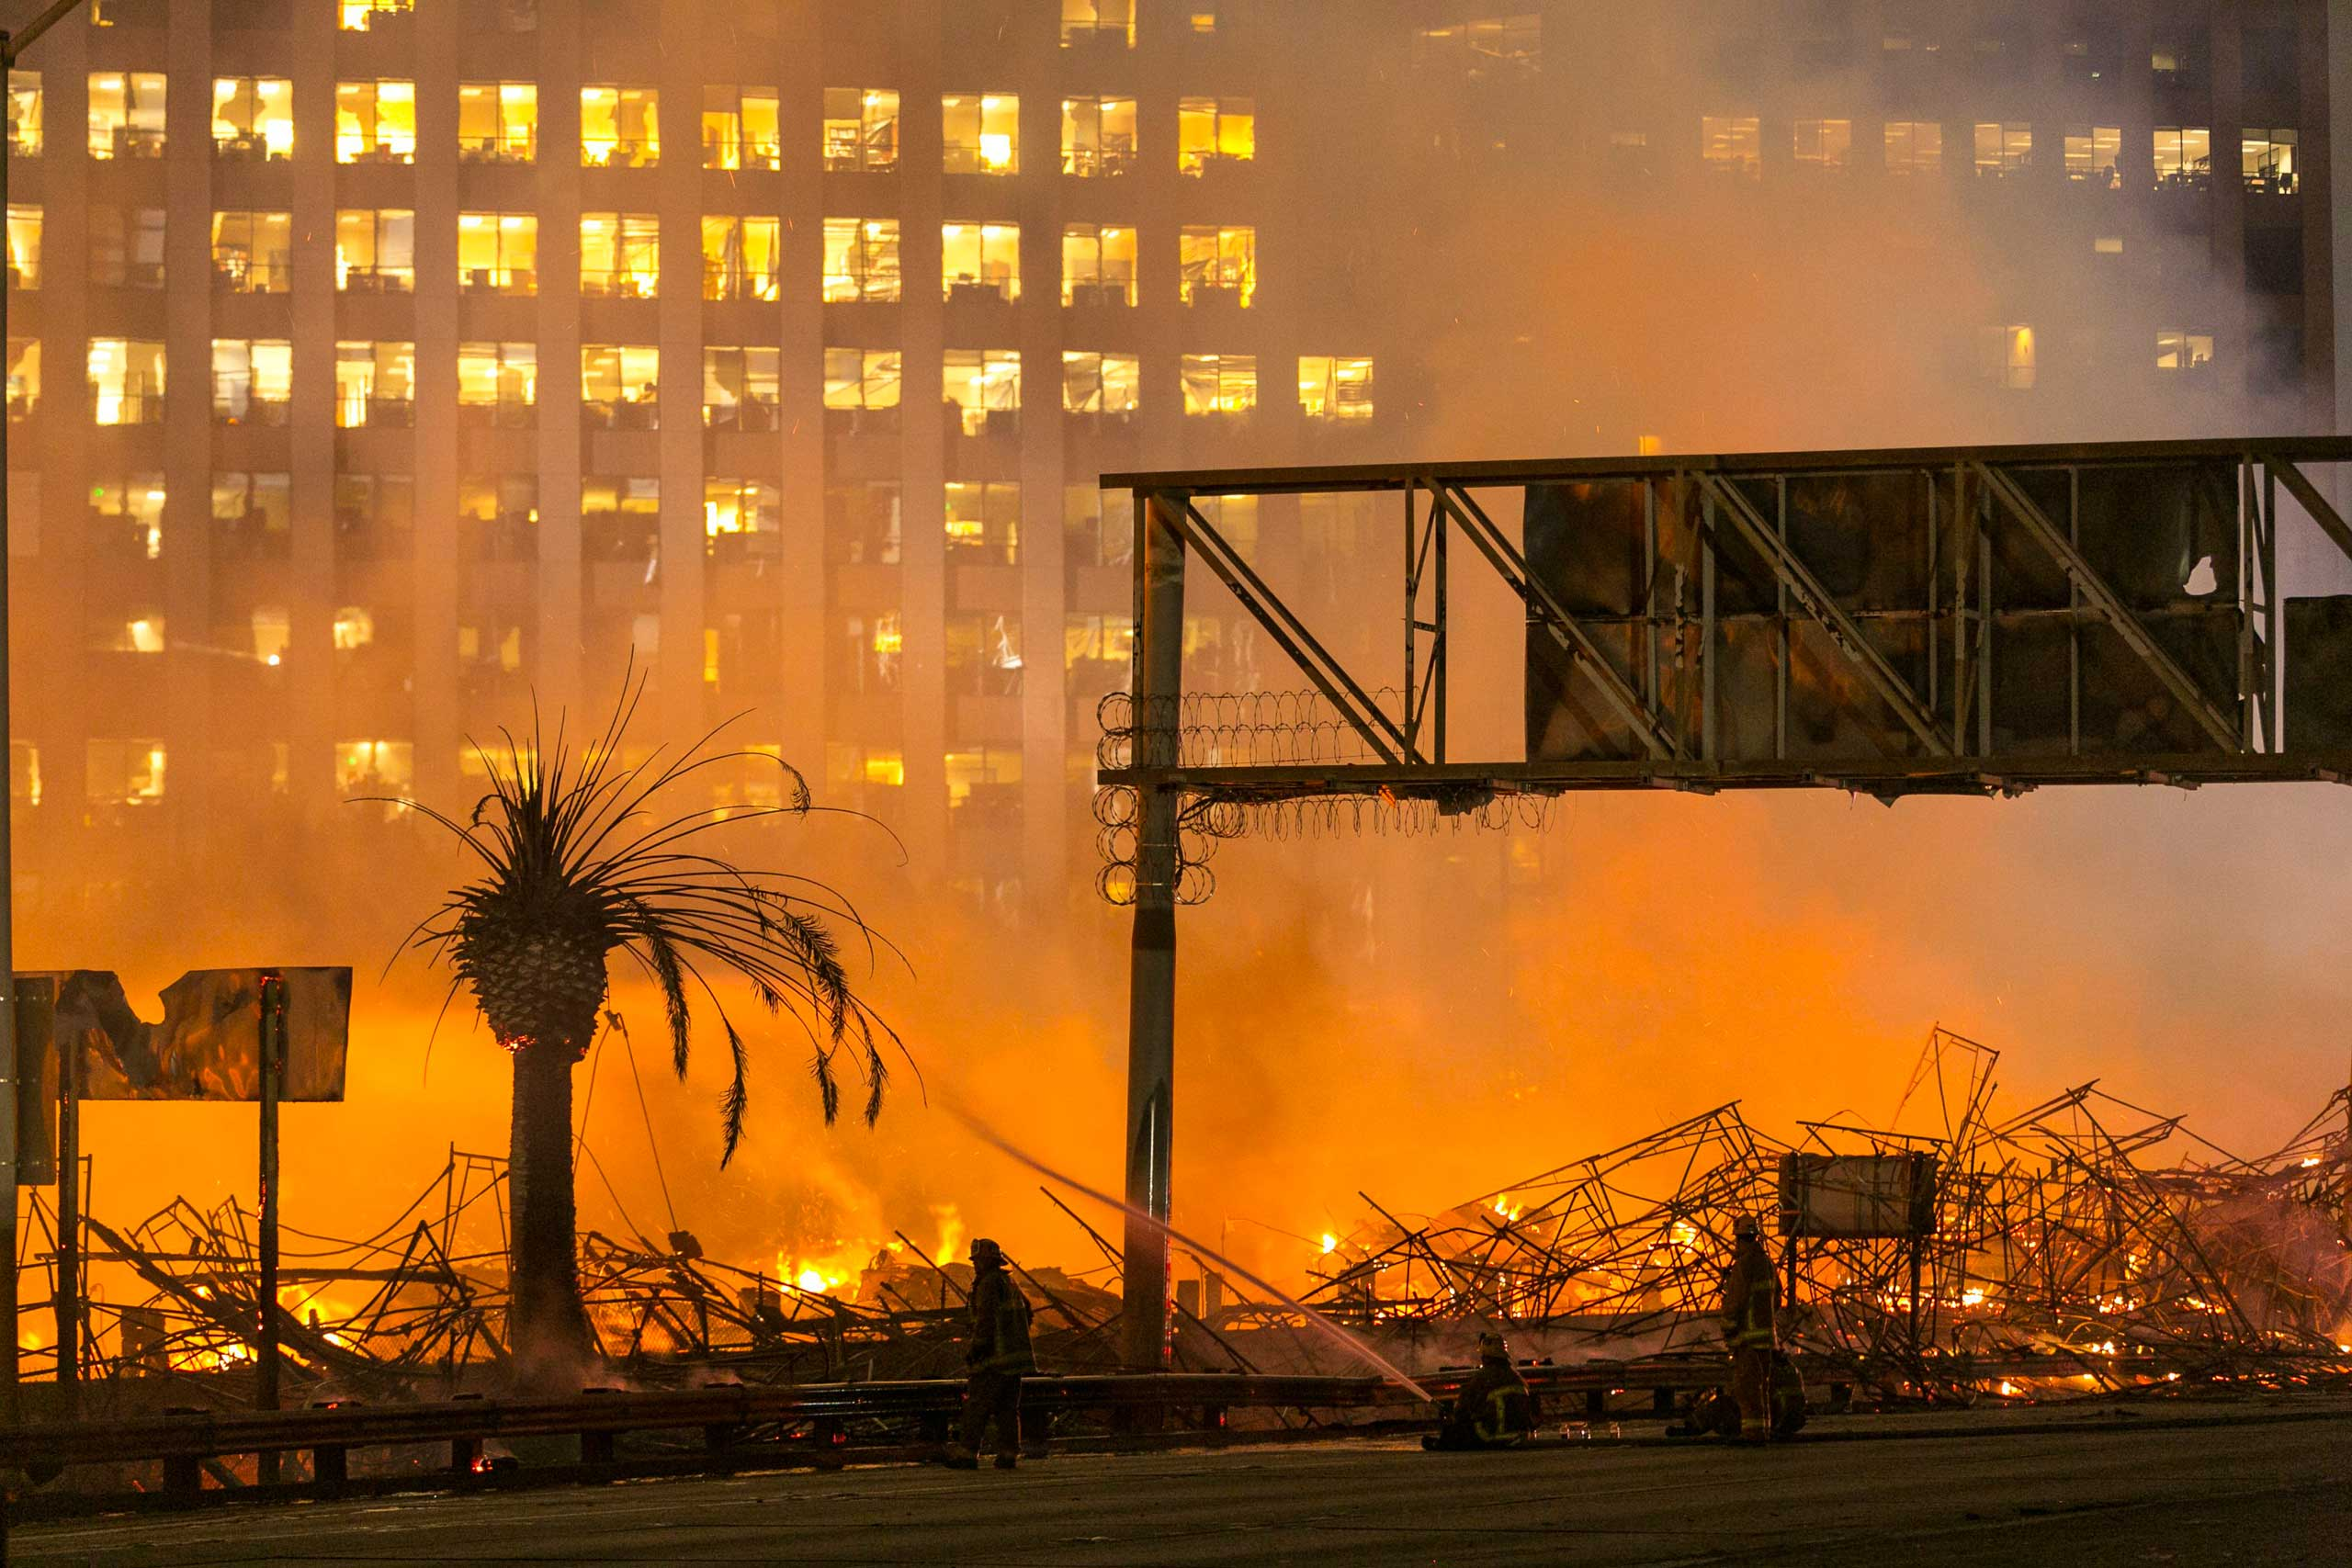 A large fire at an apartment building under construction rages in Los Angeles on Dec. 8, 2014.